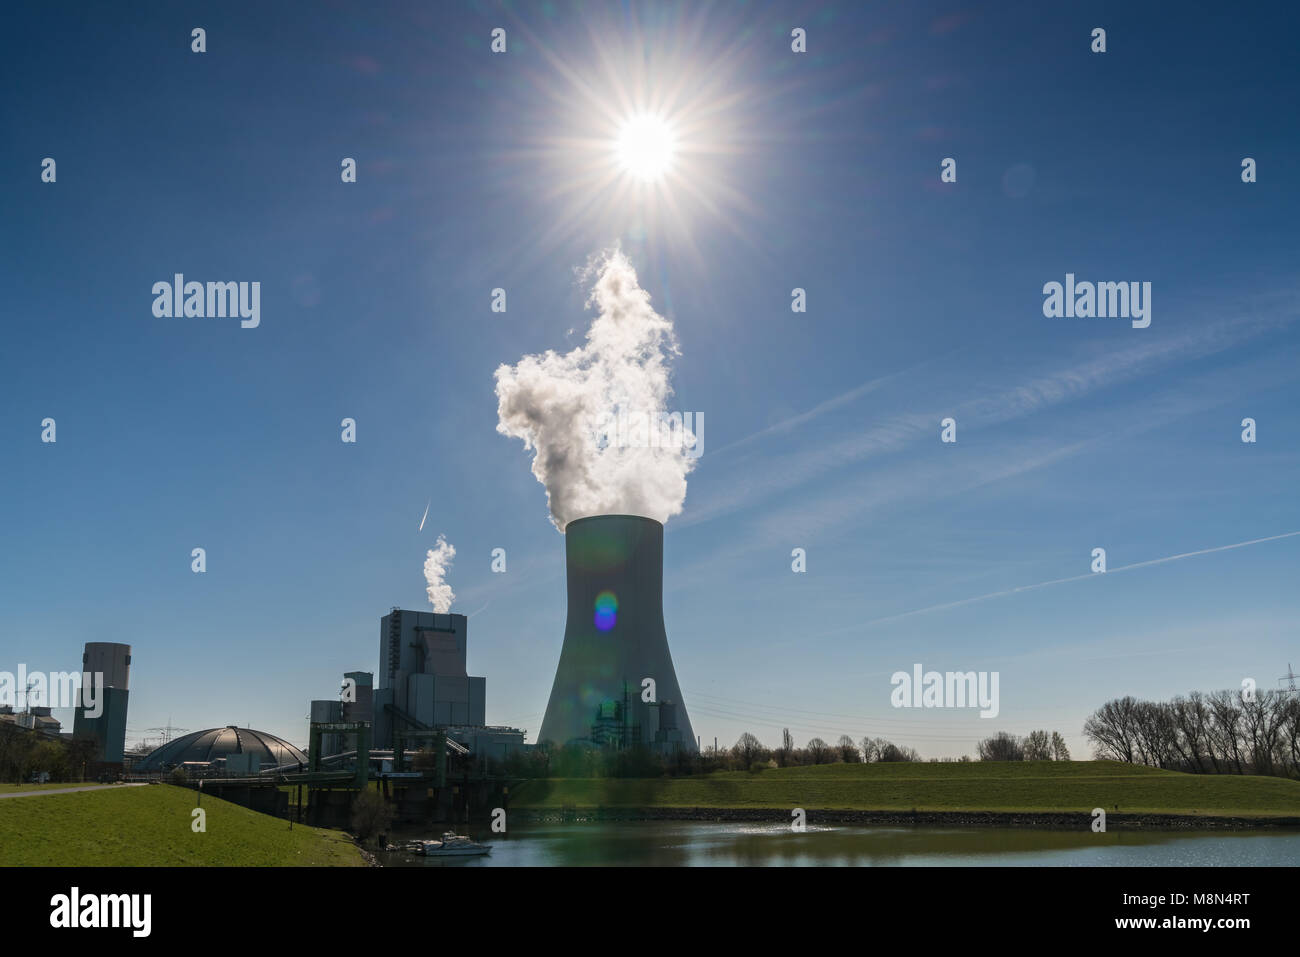 Duisburg, North Rhine-Westphalia, Germany - March 27, 2017: Power Station Walsum with some smoke and a sunstar - Stock Image